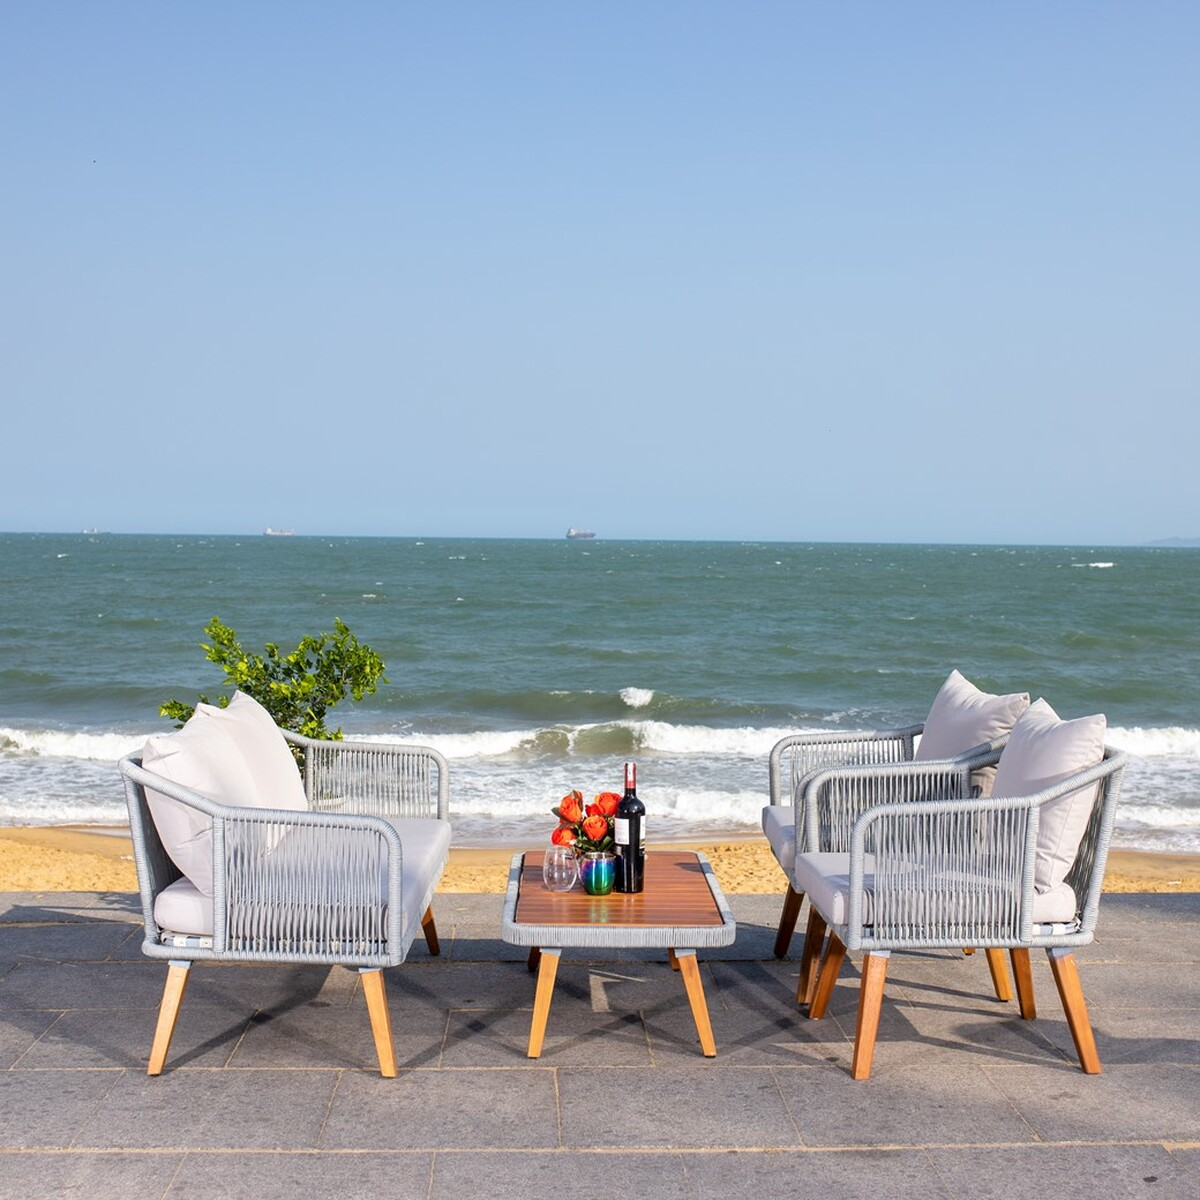 PAT7049C Patio Sets - 4 Piece - Furniture by Safavieh on Safavieh Raldin  id=85571